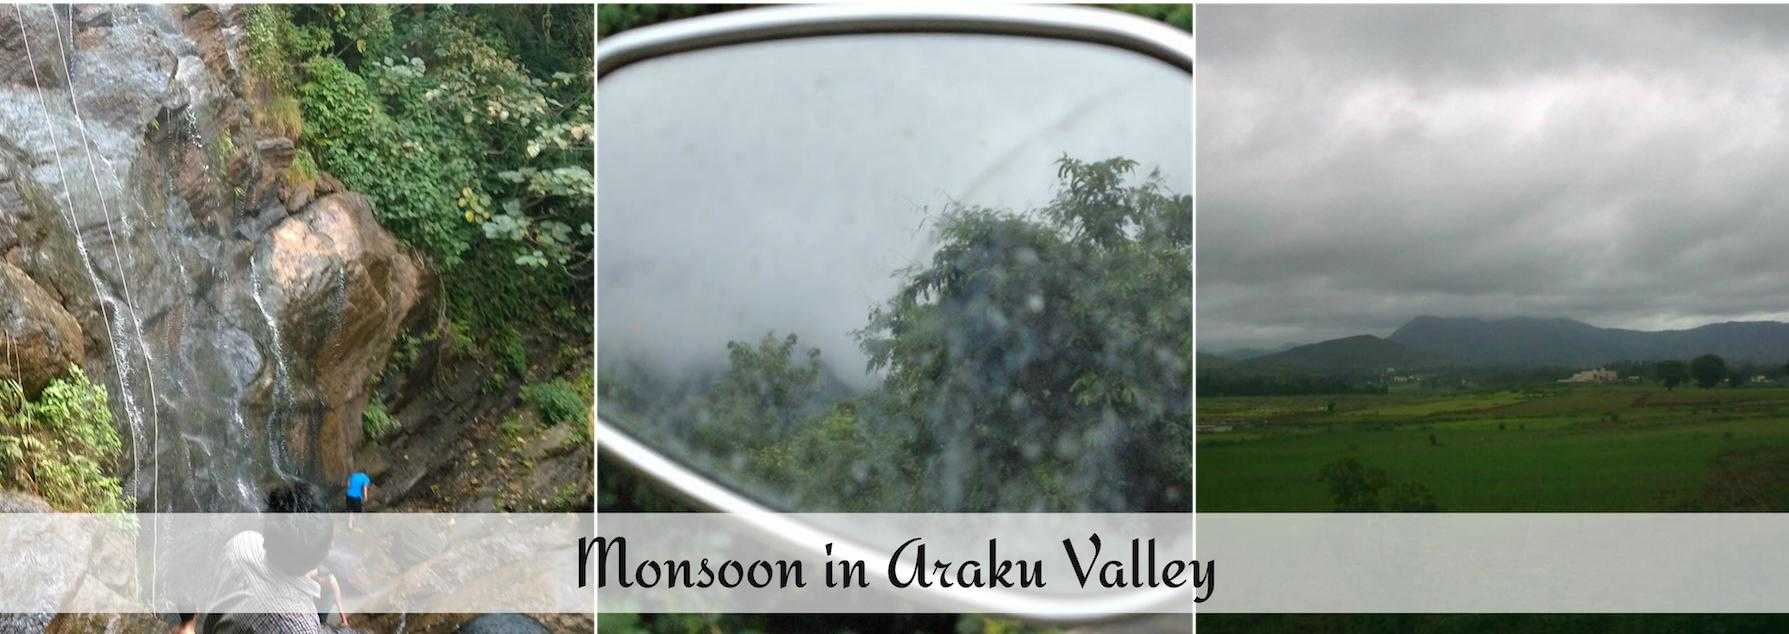 monsoon-in-araku-valley.jpg